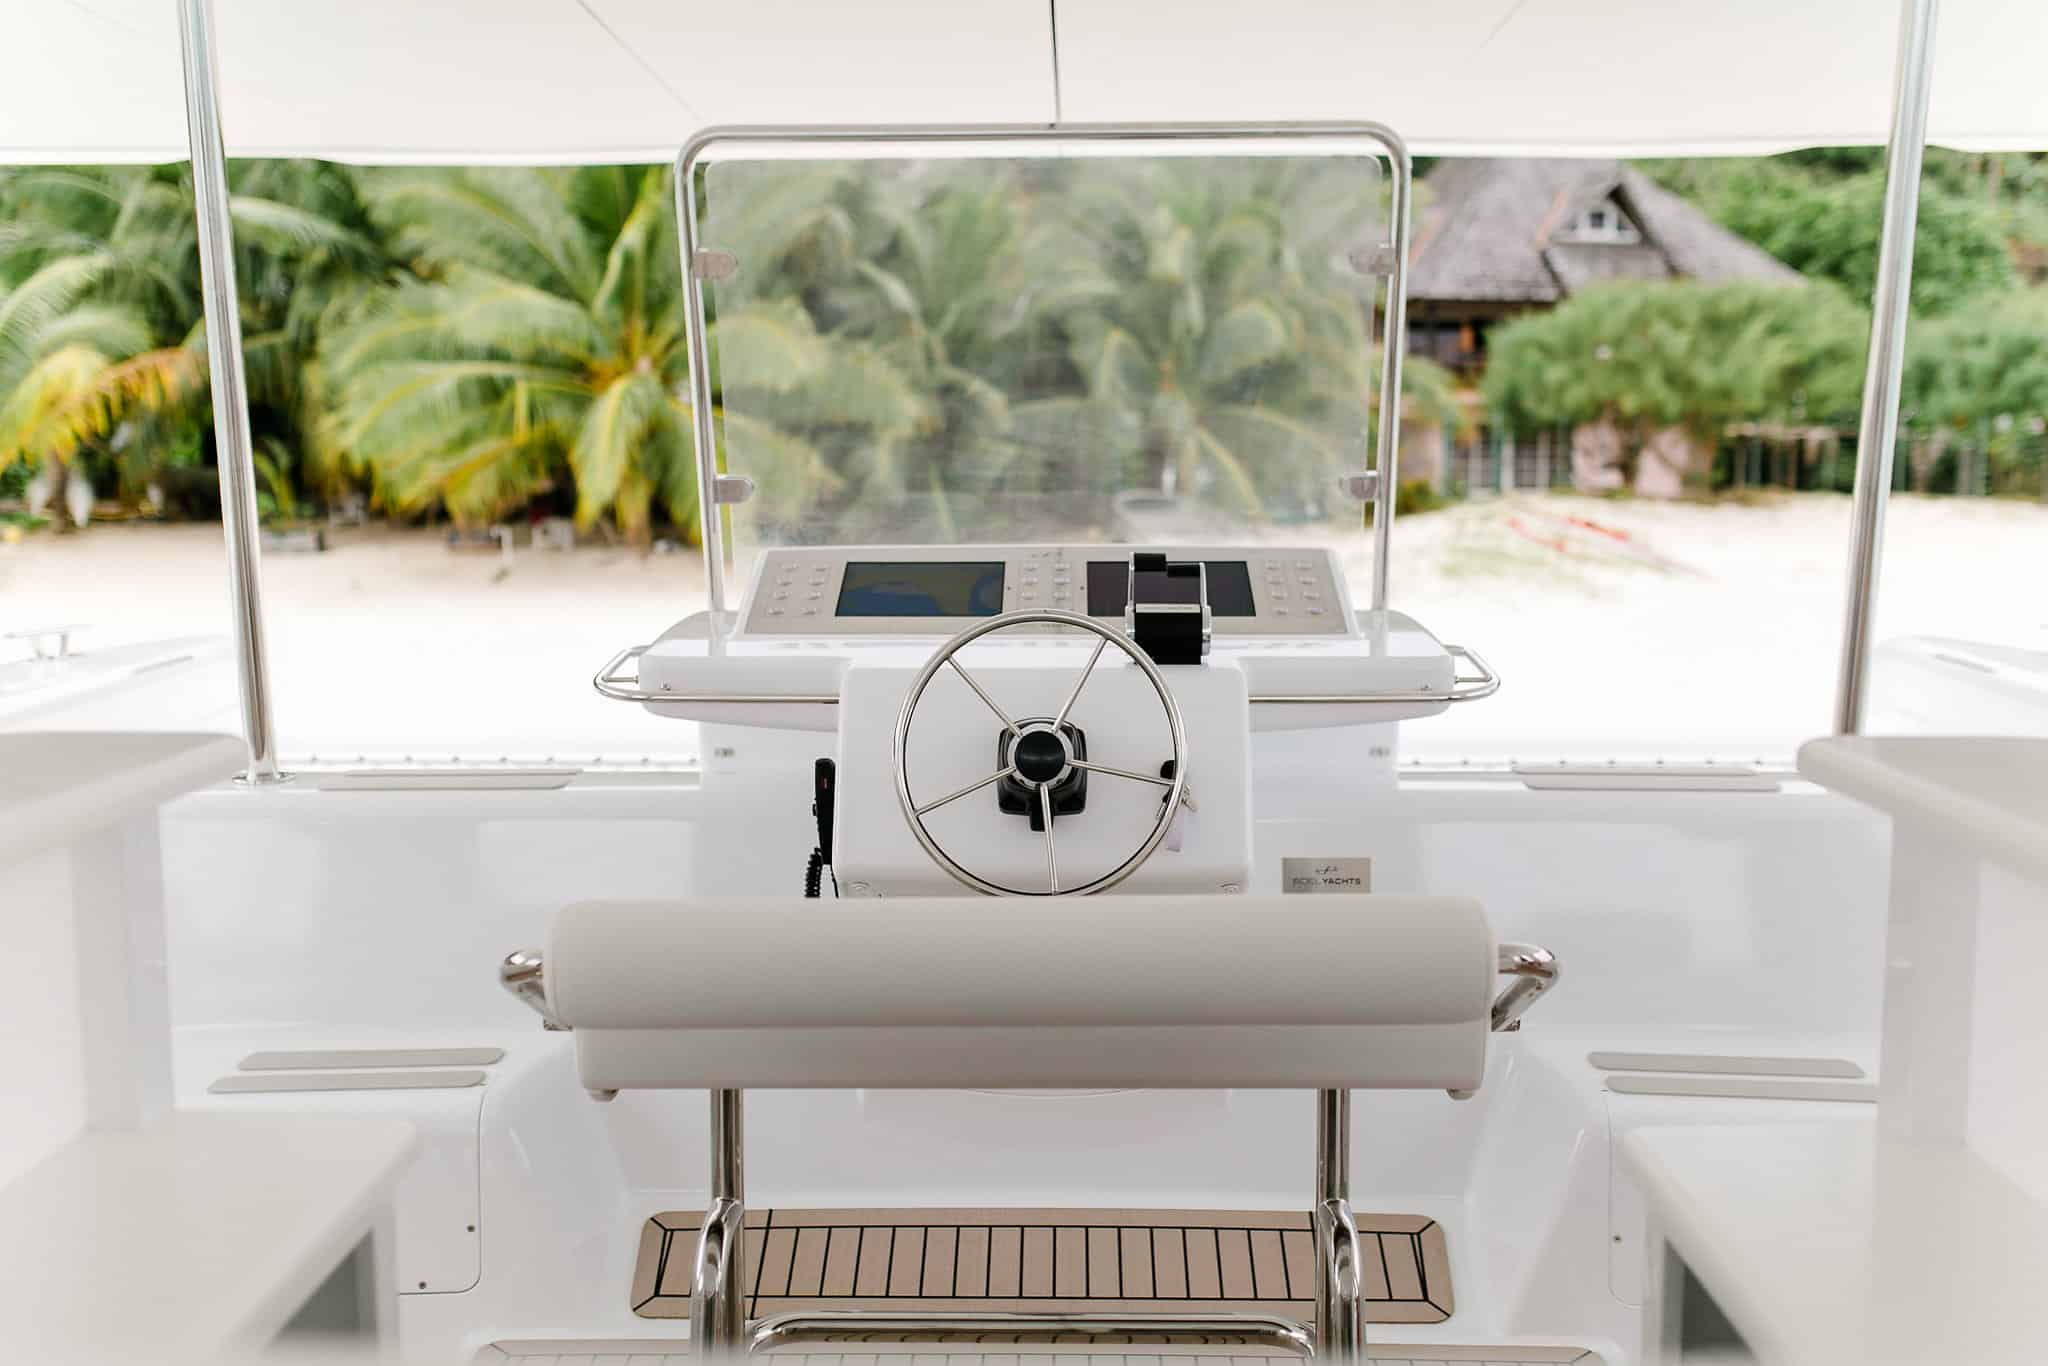 The electric catamaran from Soel Yachts can be controlled with iPads